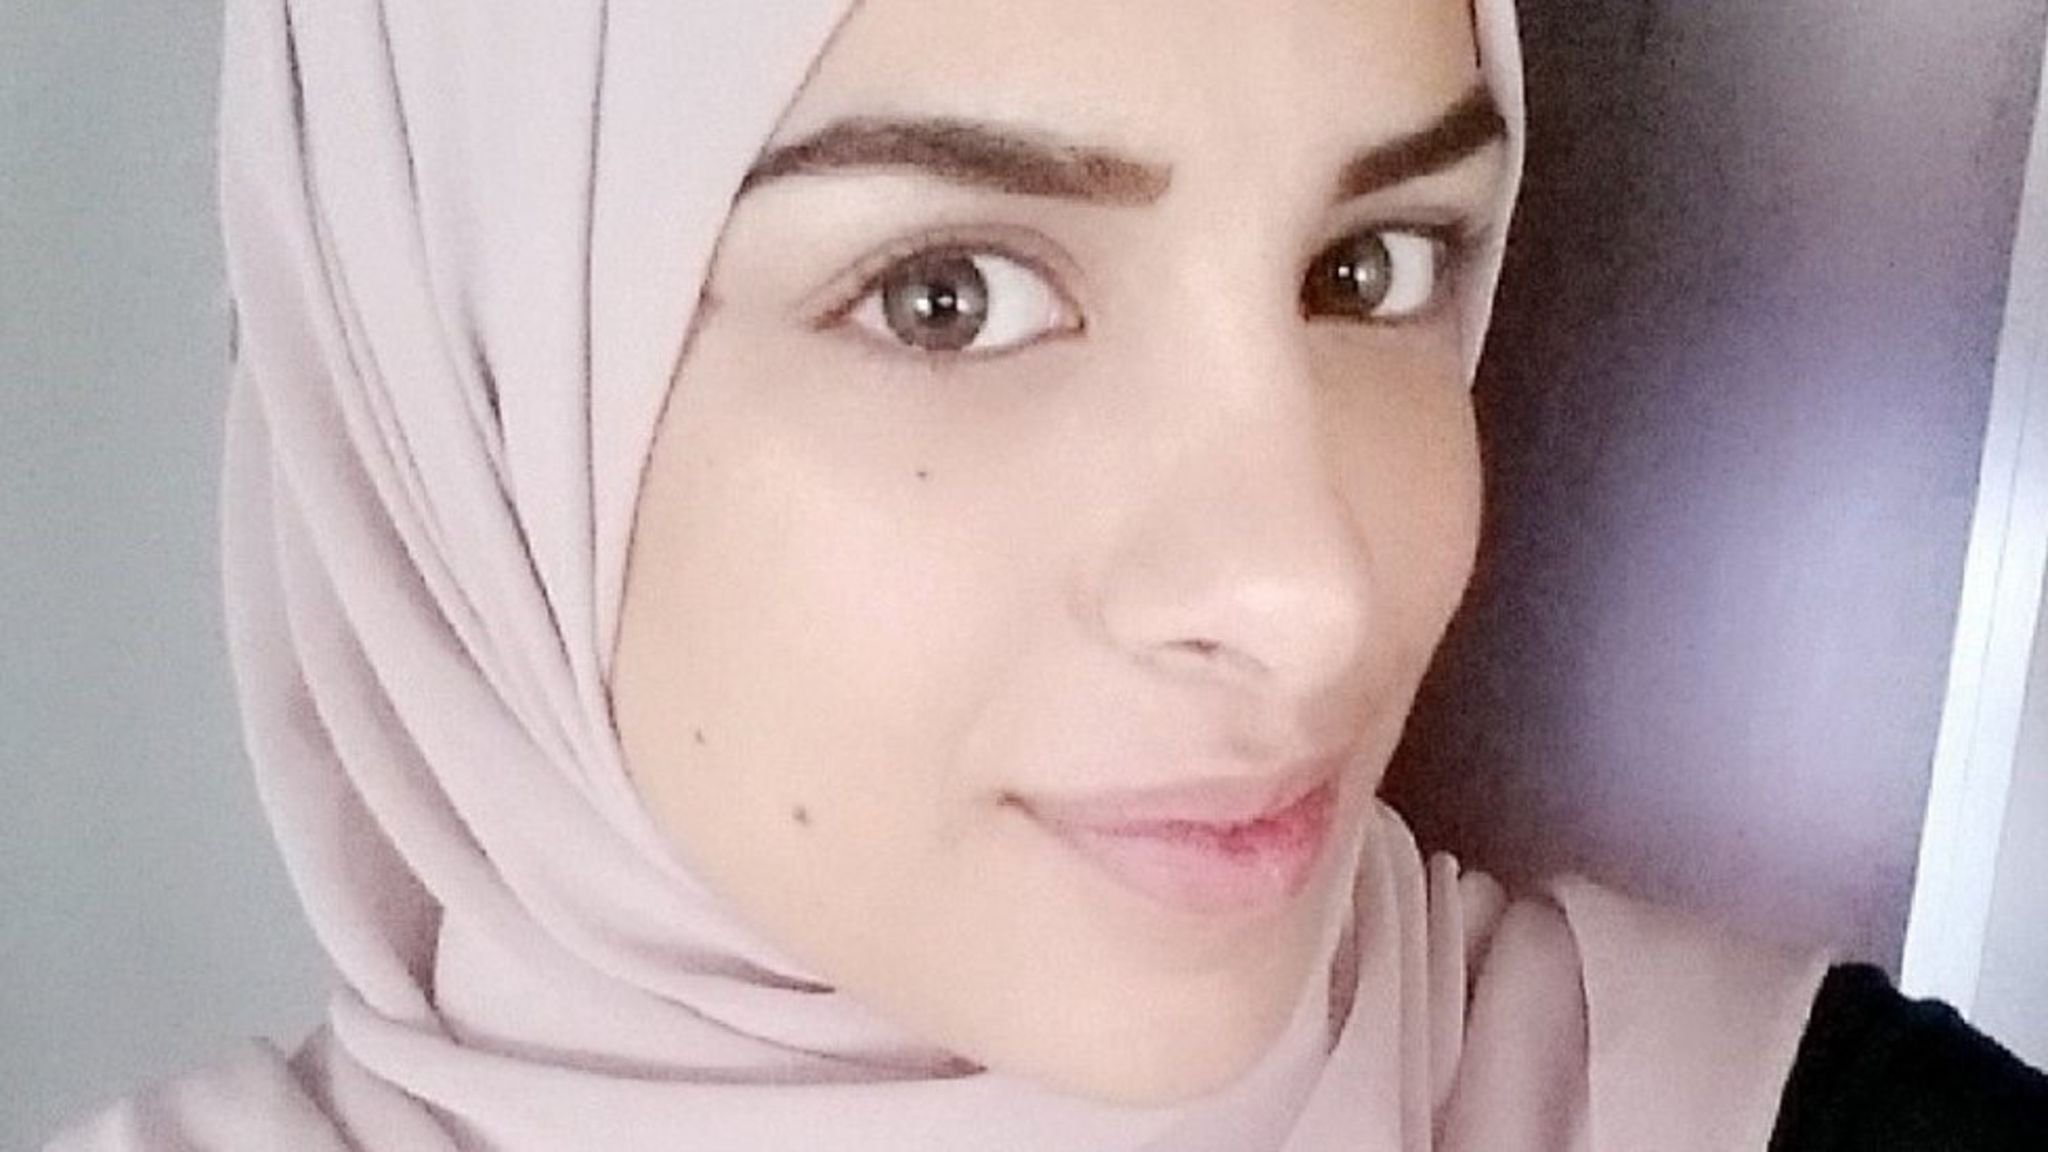 Muslim woman rejected from job for not shaking man's hand is awarded £3,000